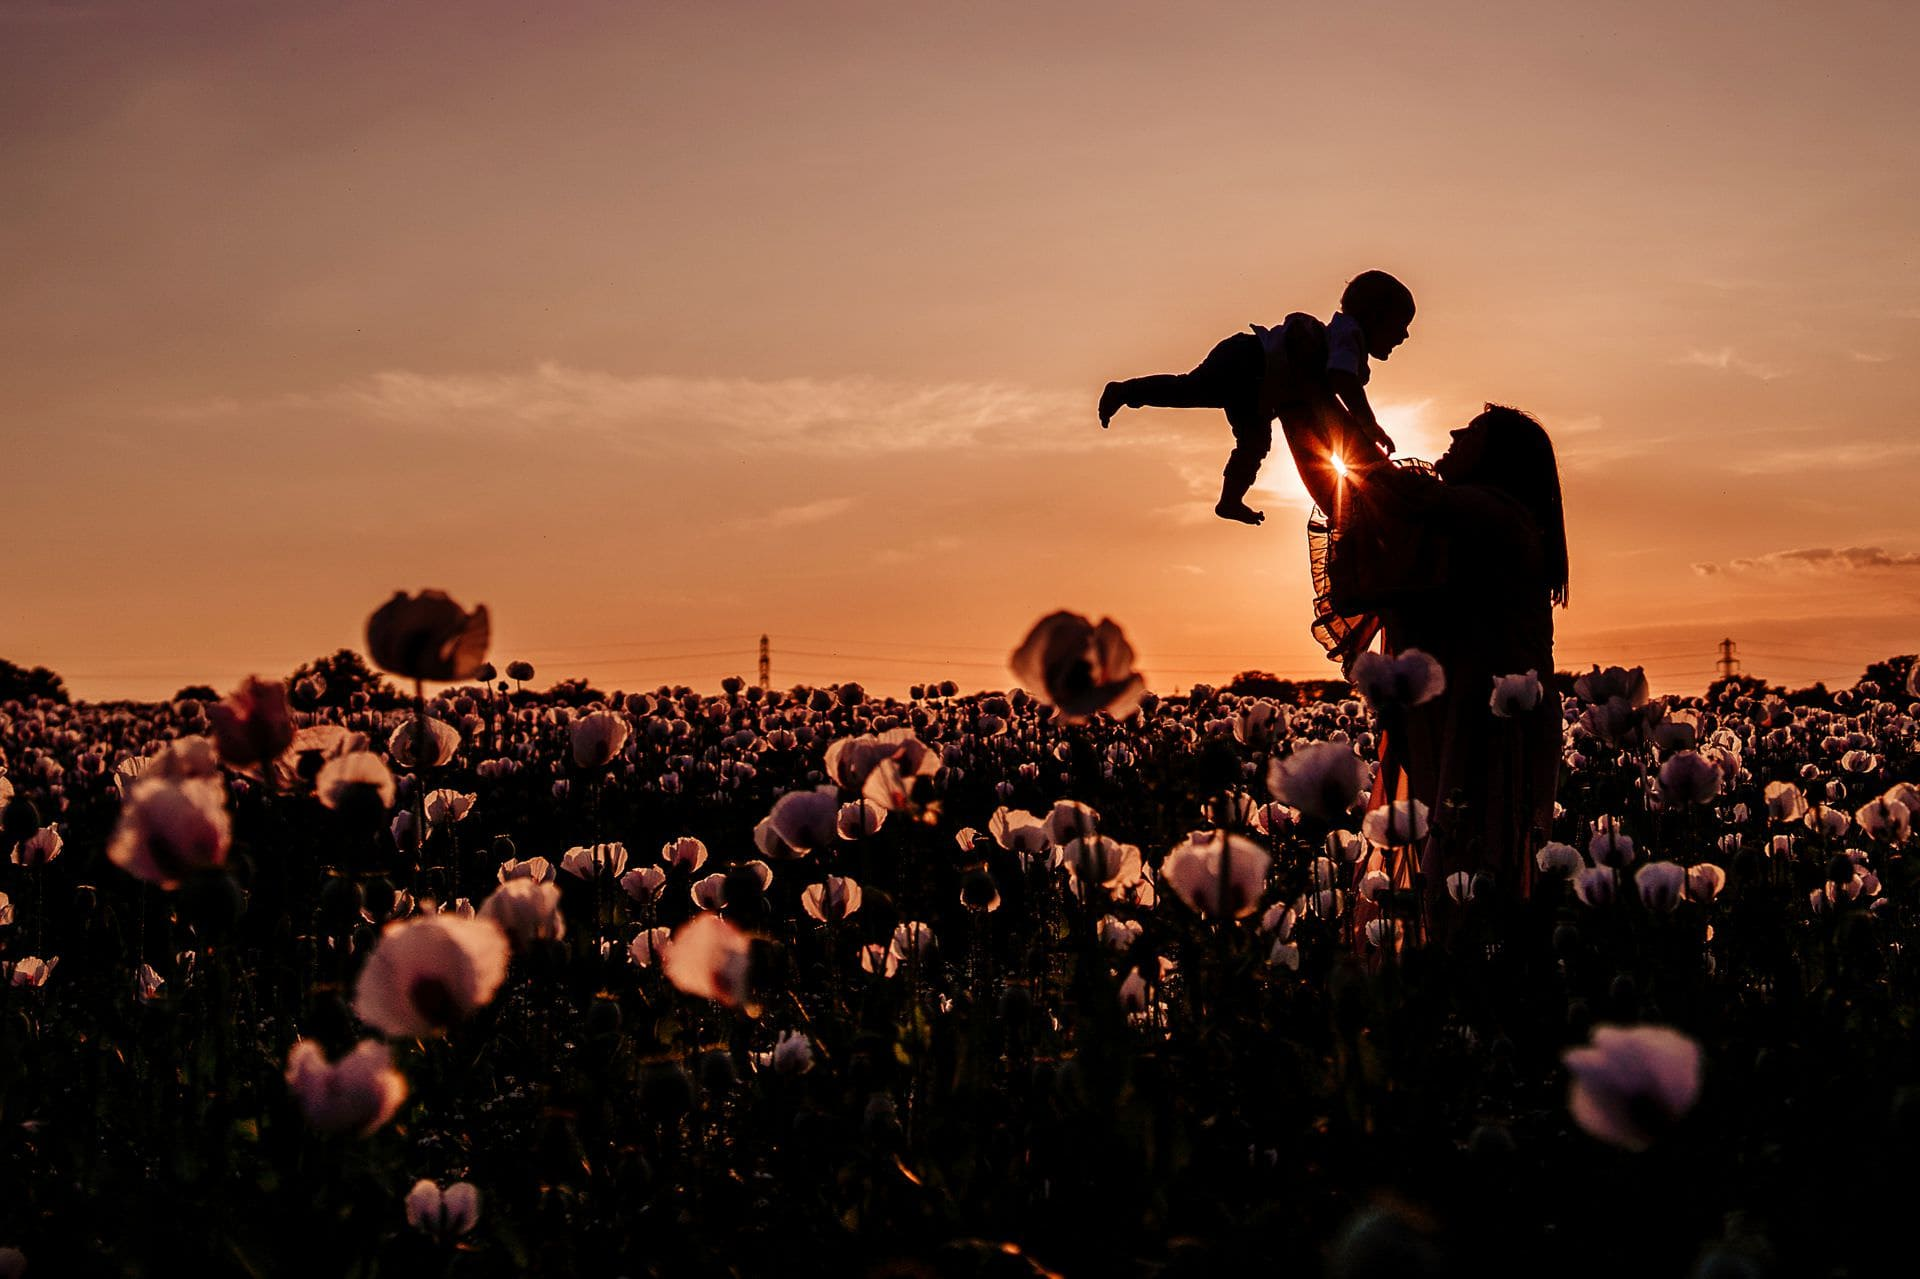 Family Photoshoots in the Poppy Fields // Round-up